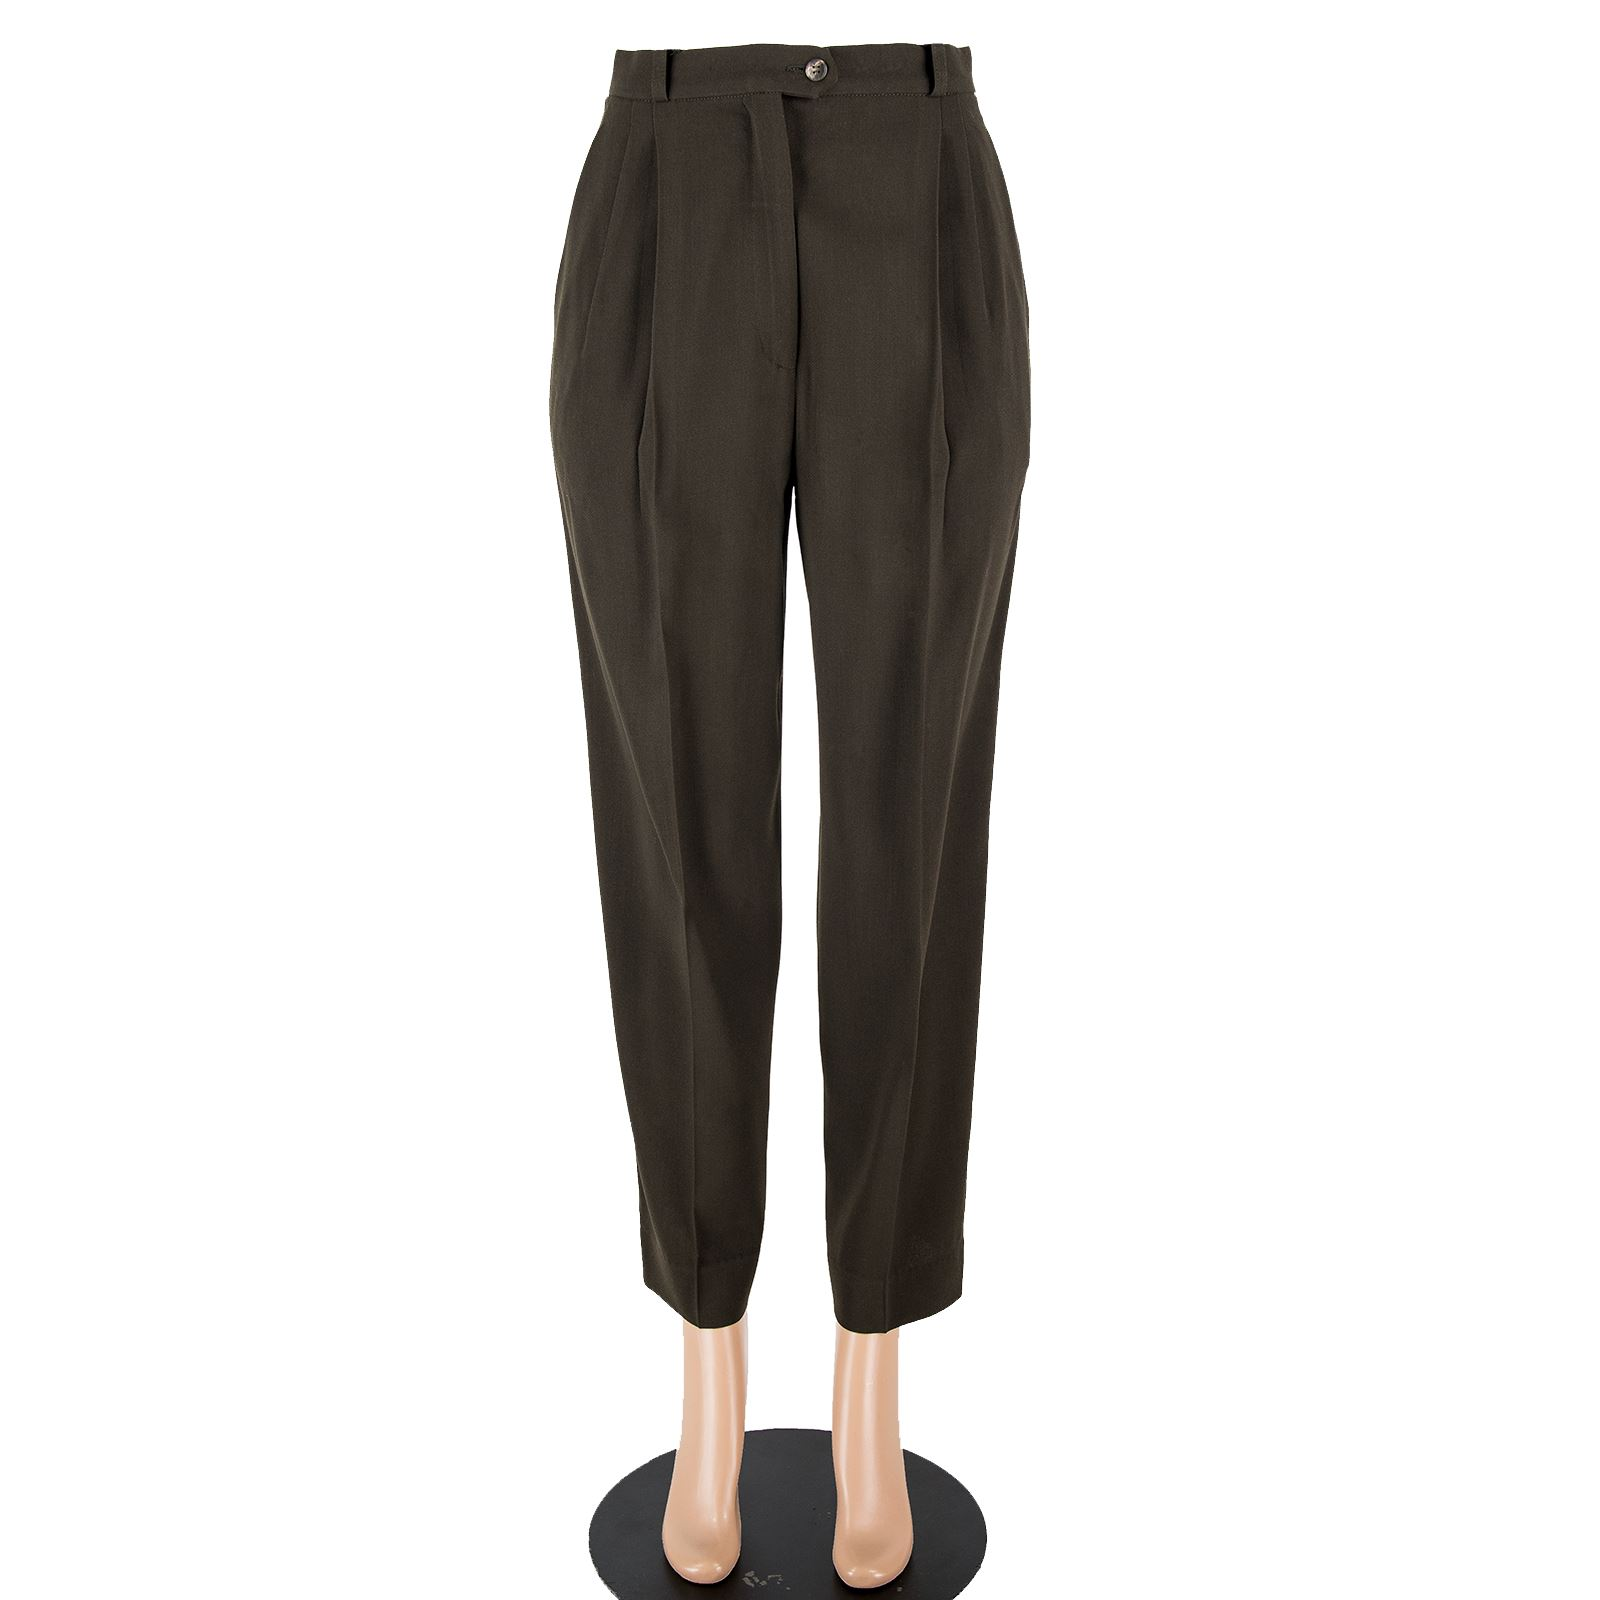 8422421b Details about Max Mara Brown Wool Pleated Front Belted Straight Leg Trousers  Pants SZ 8